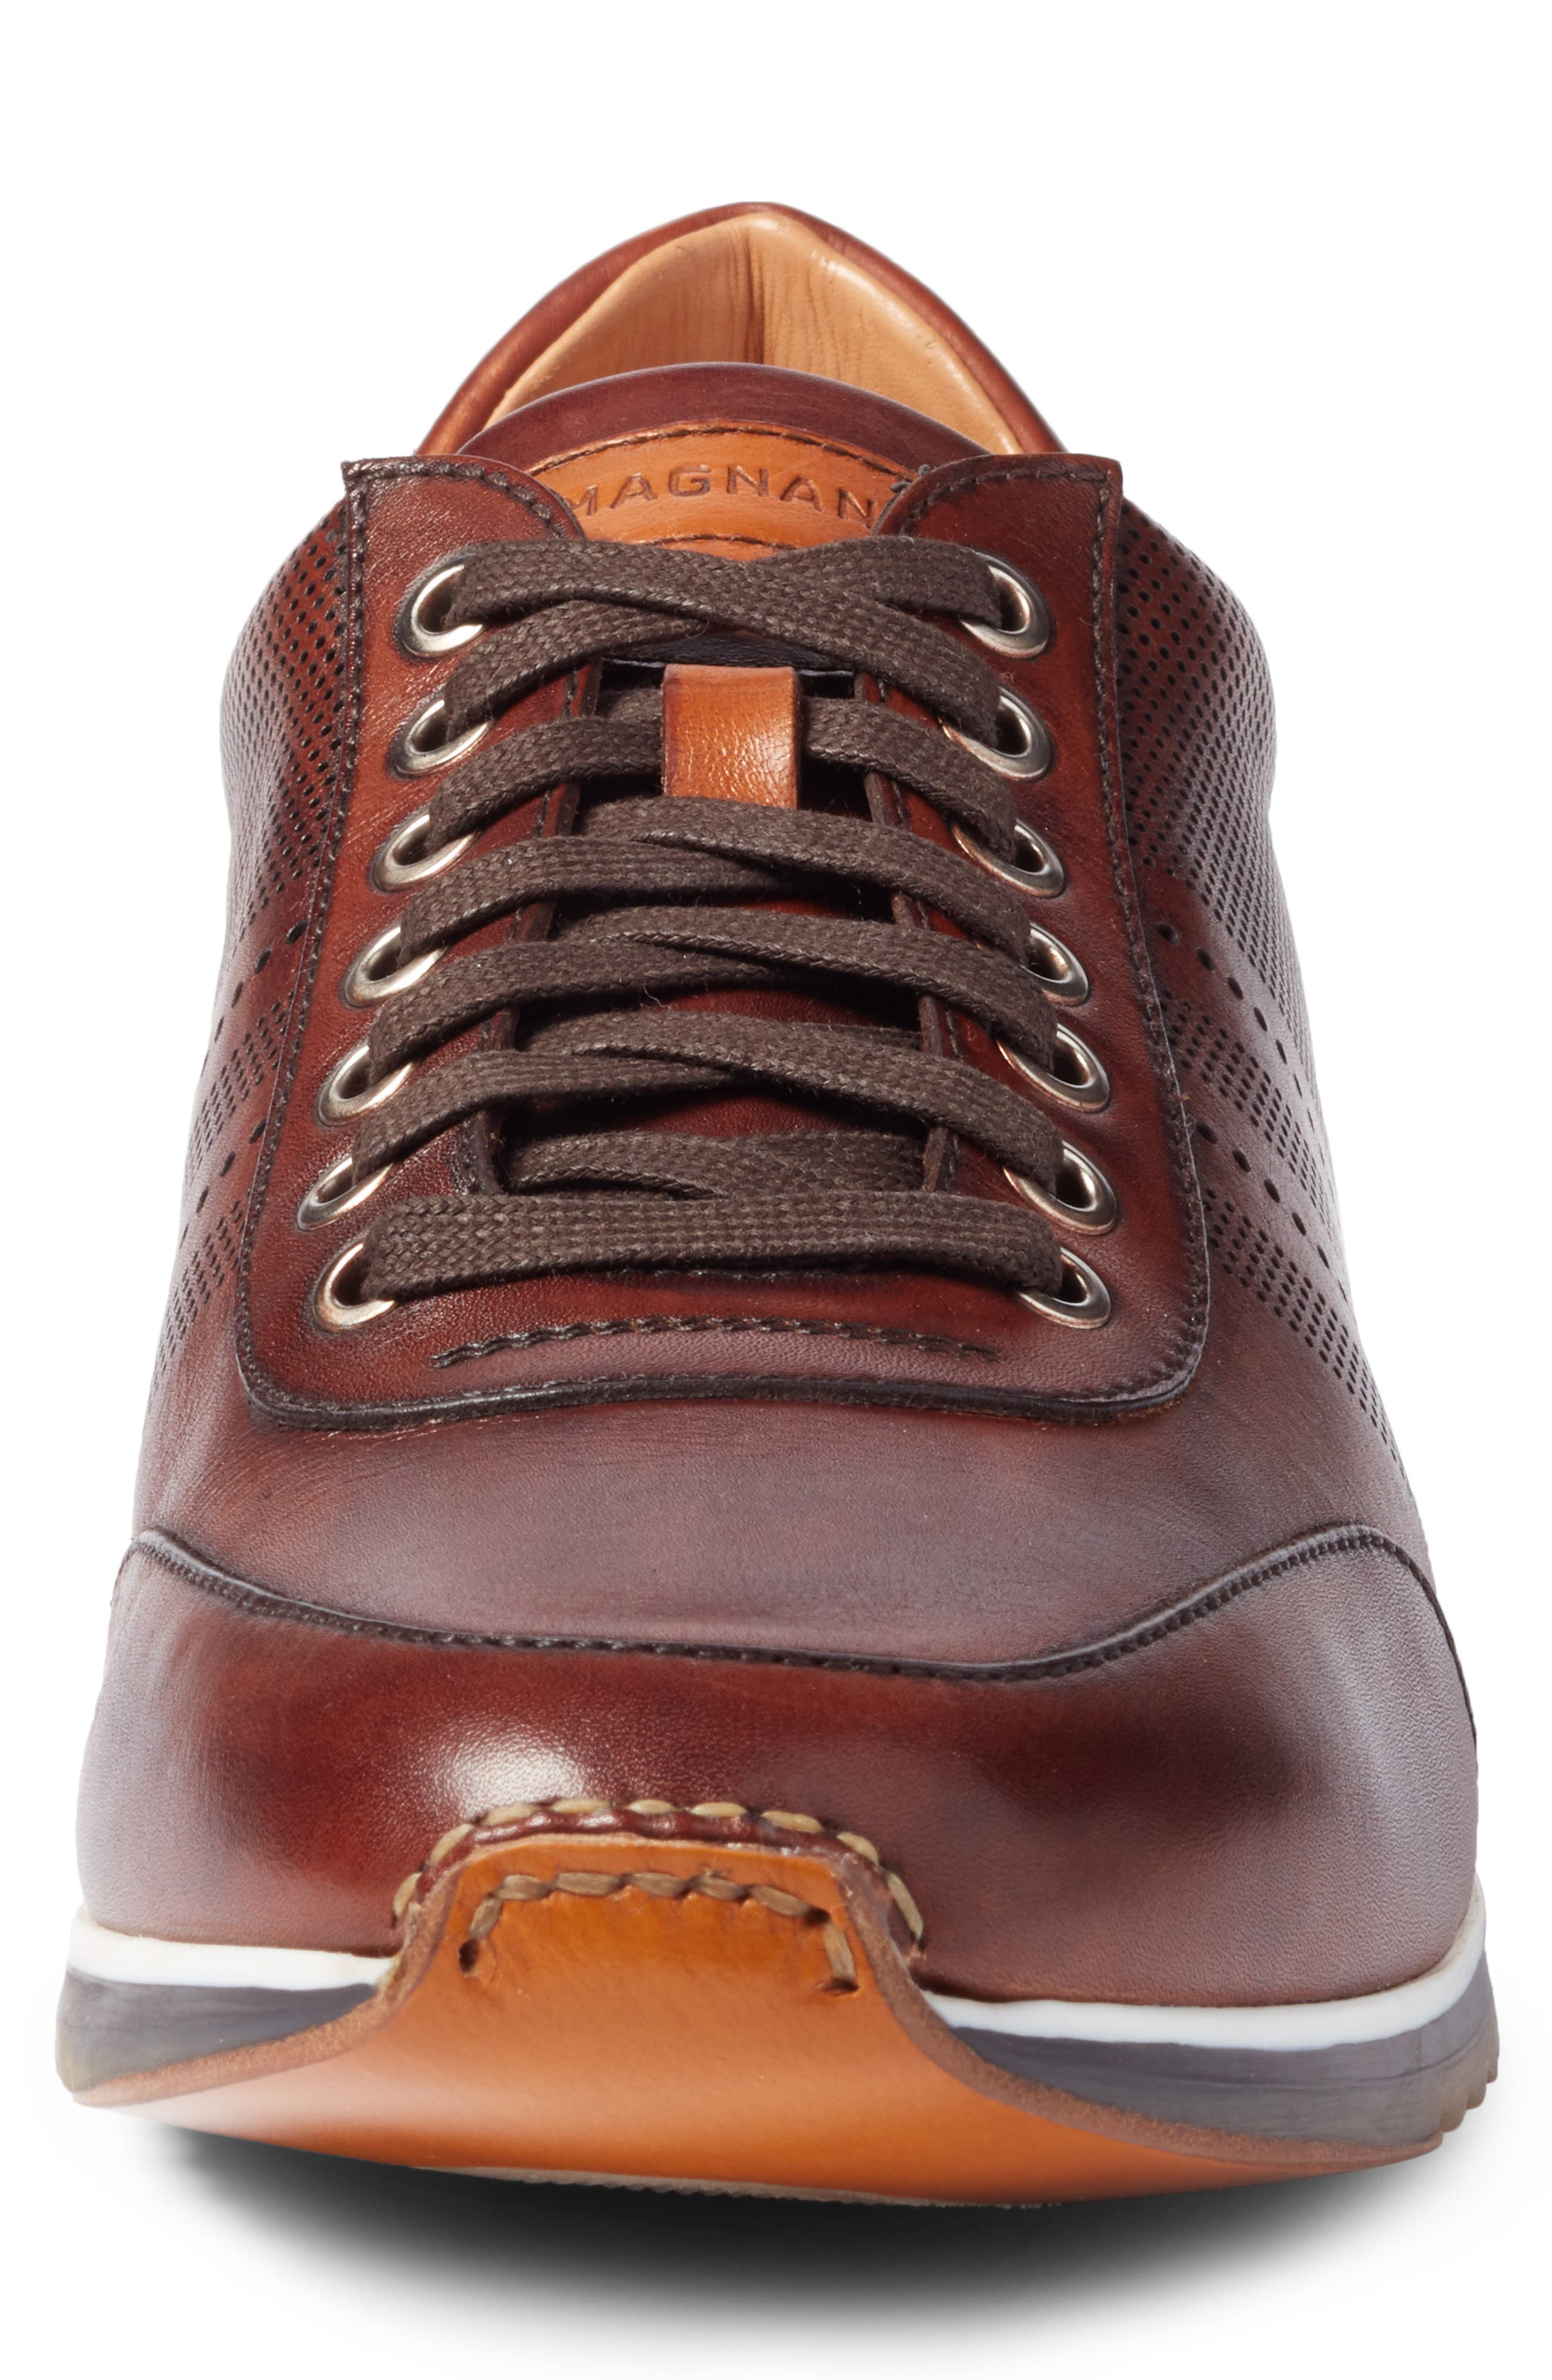 Alternate Image 4  - Magnanni Merino Sneaker (Men)